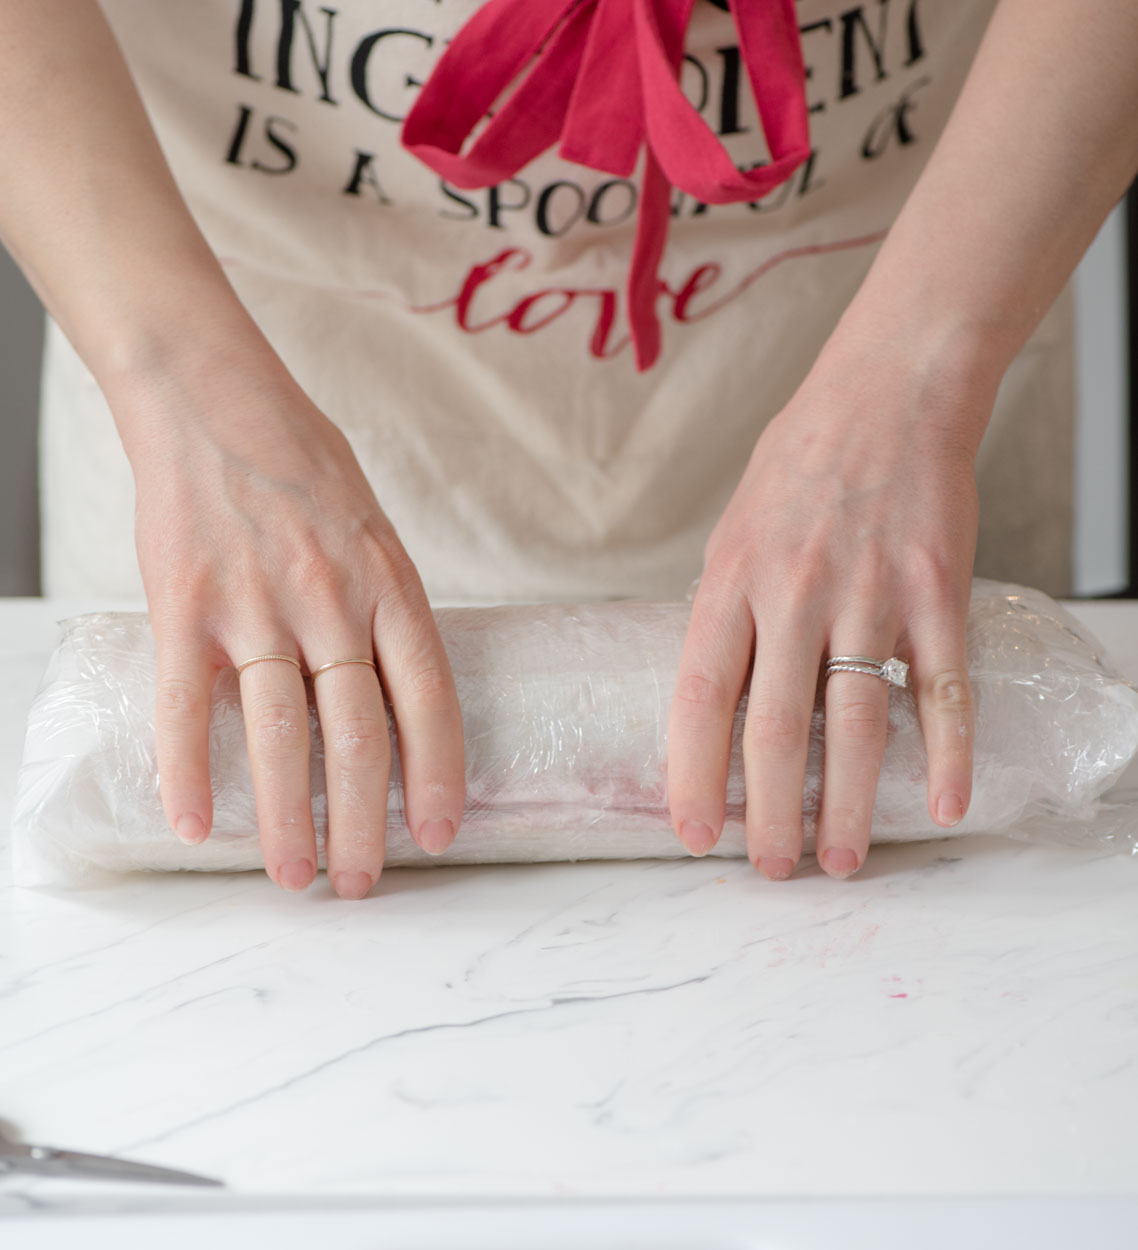 hands shown smoothing out and holding the cake roll covered in plastic wrap